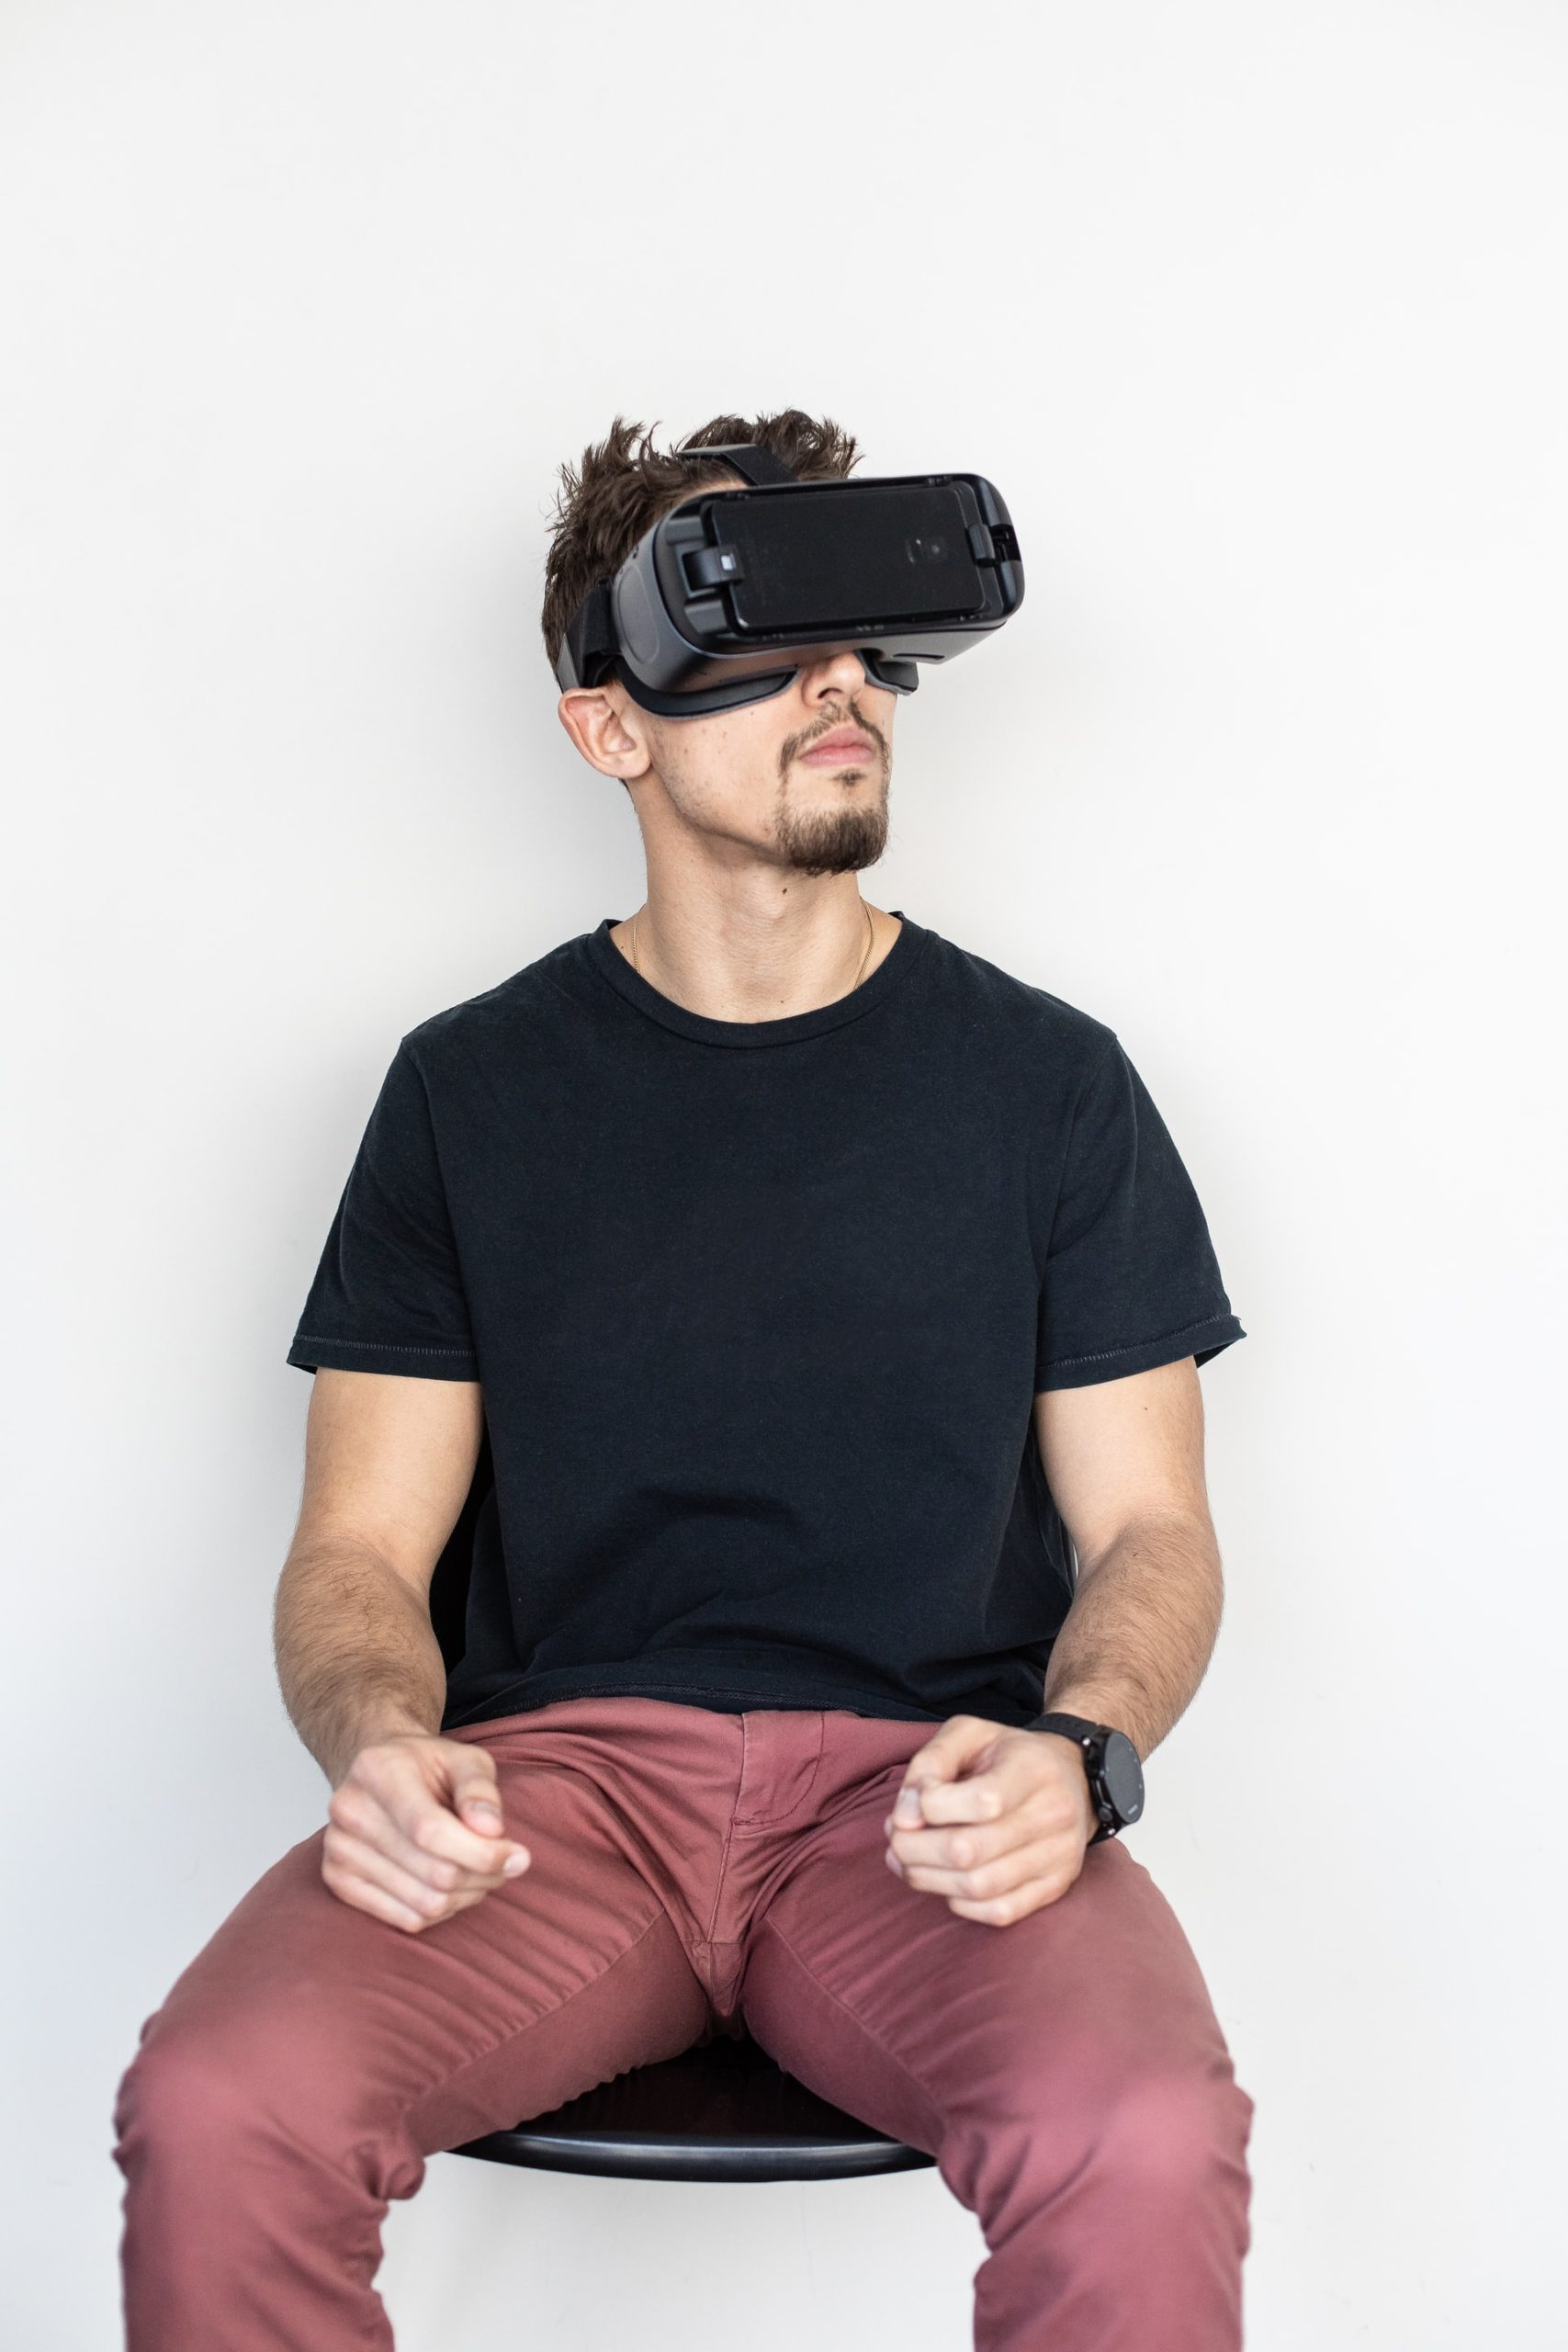 VR Gambling Facts Article Image